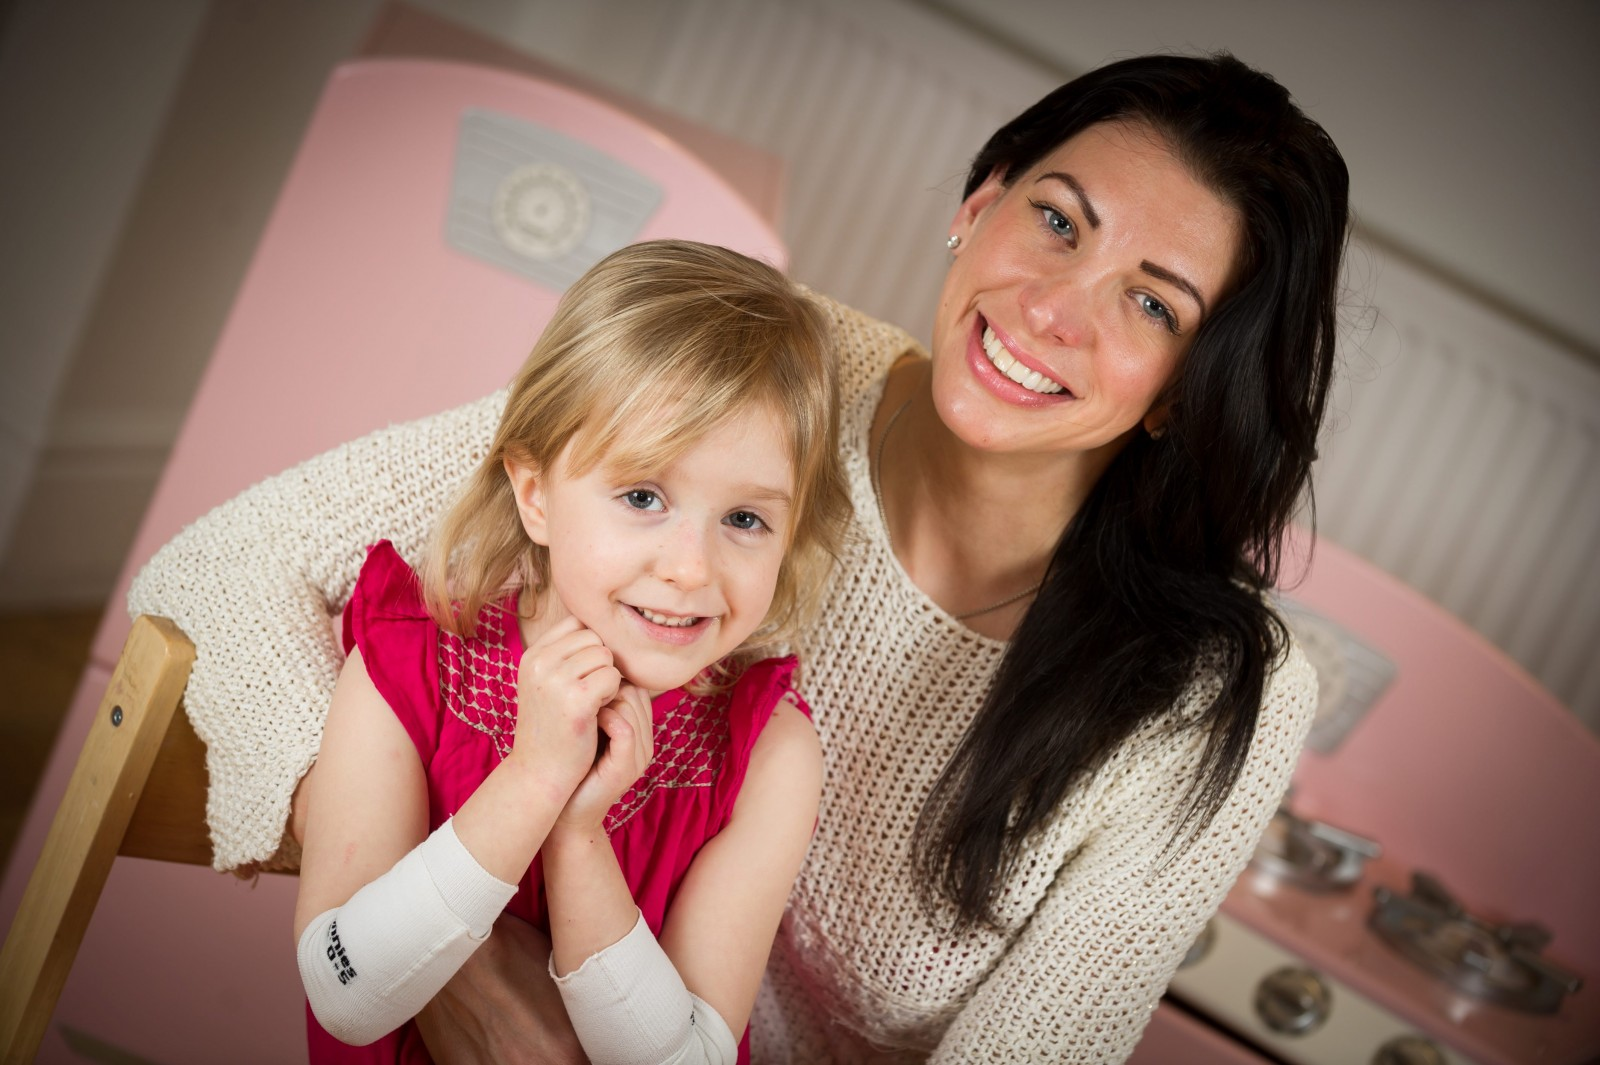 'Cuddles leave my daughter in agony' The little girl with butterfly skin